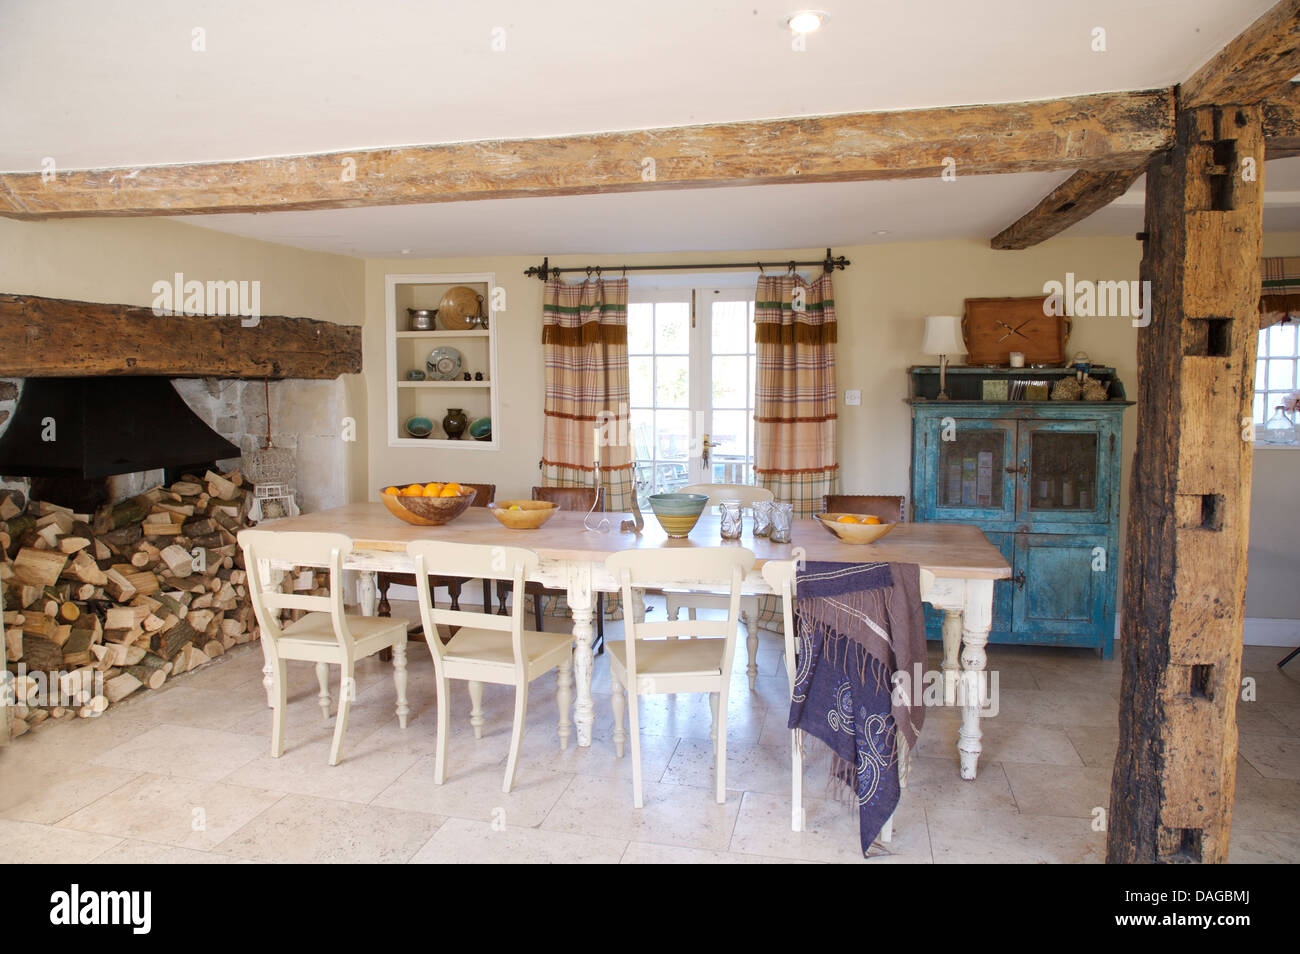 White Painted Chairs And Table In Country Dining Room With Large